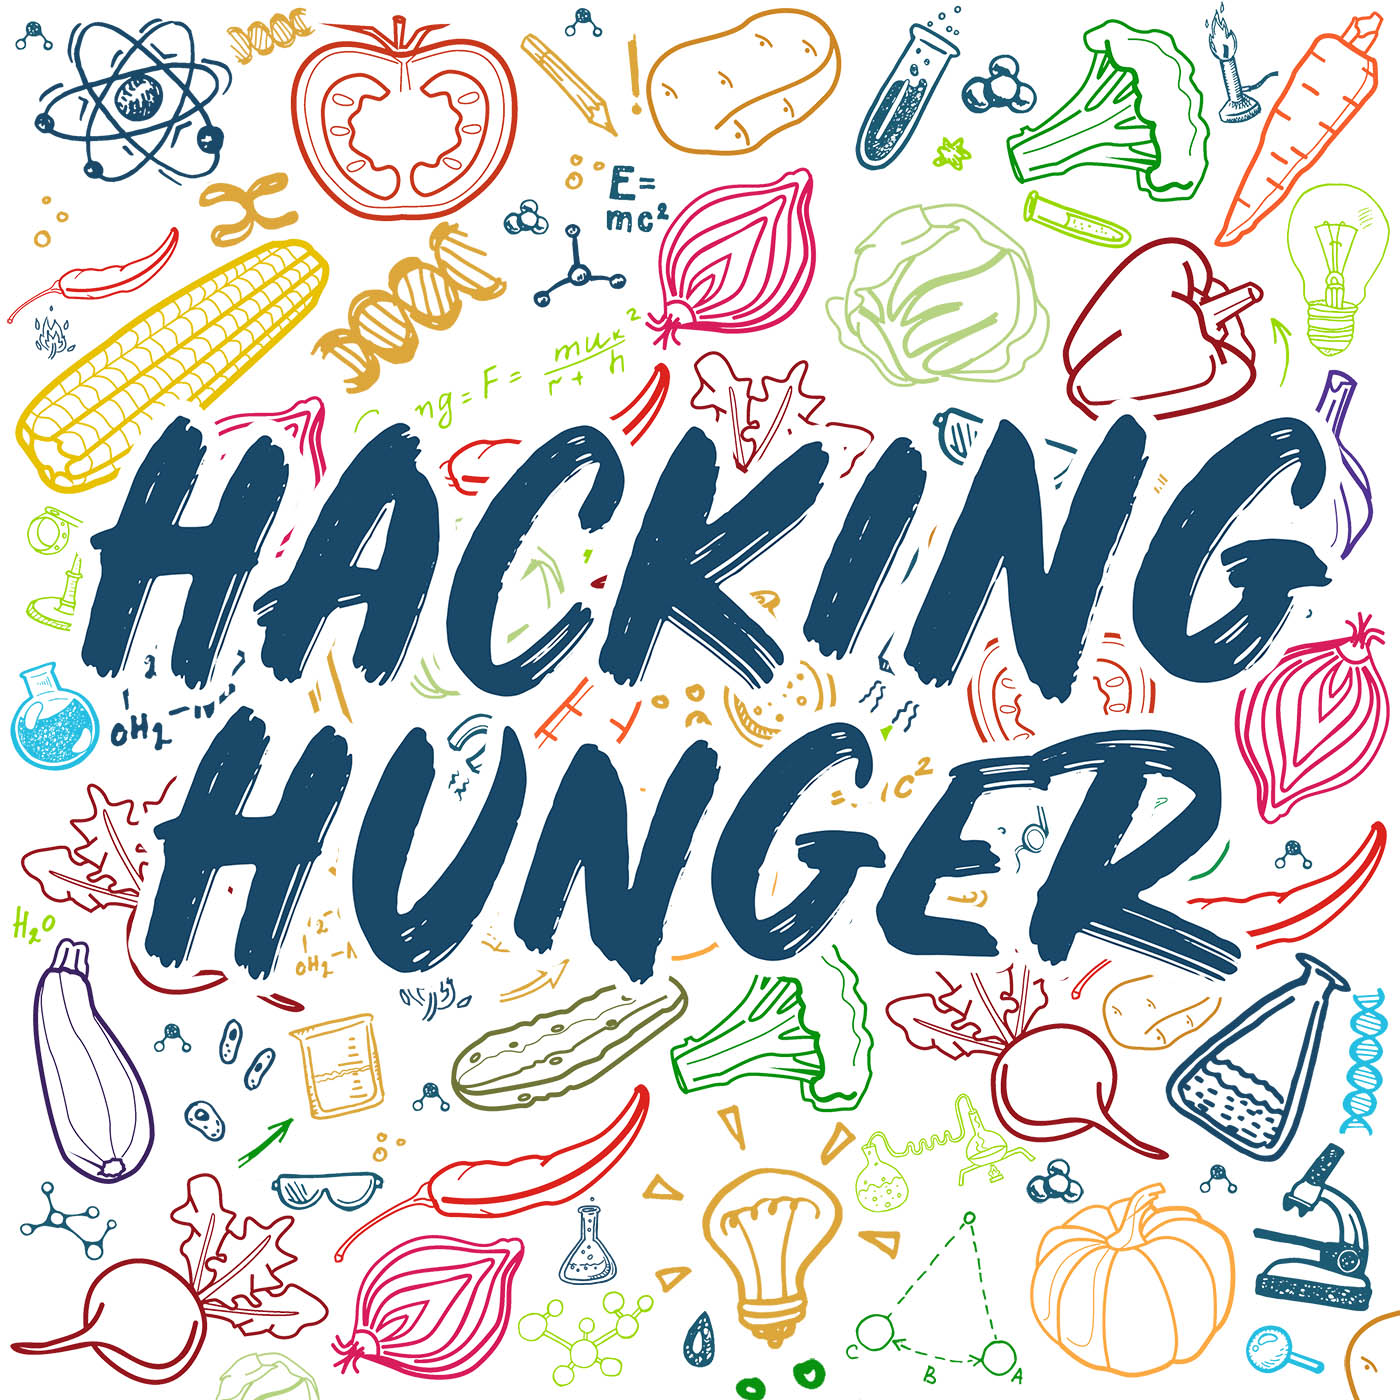 Episode 45: How Innovation Can Help Solve Hunger During a Pandemic